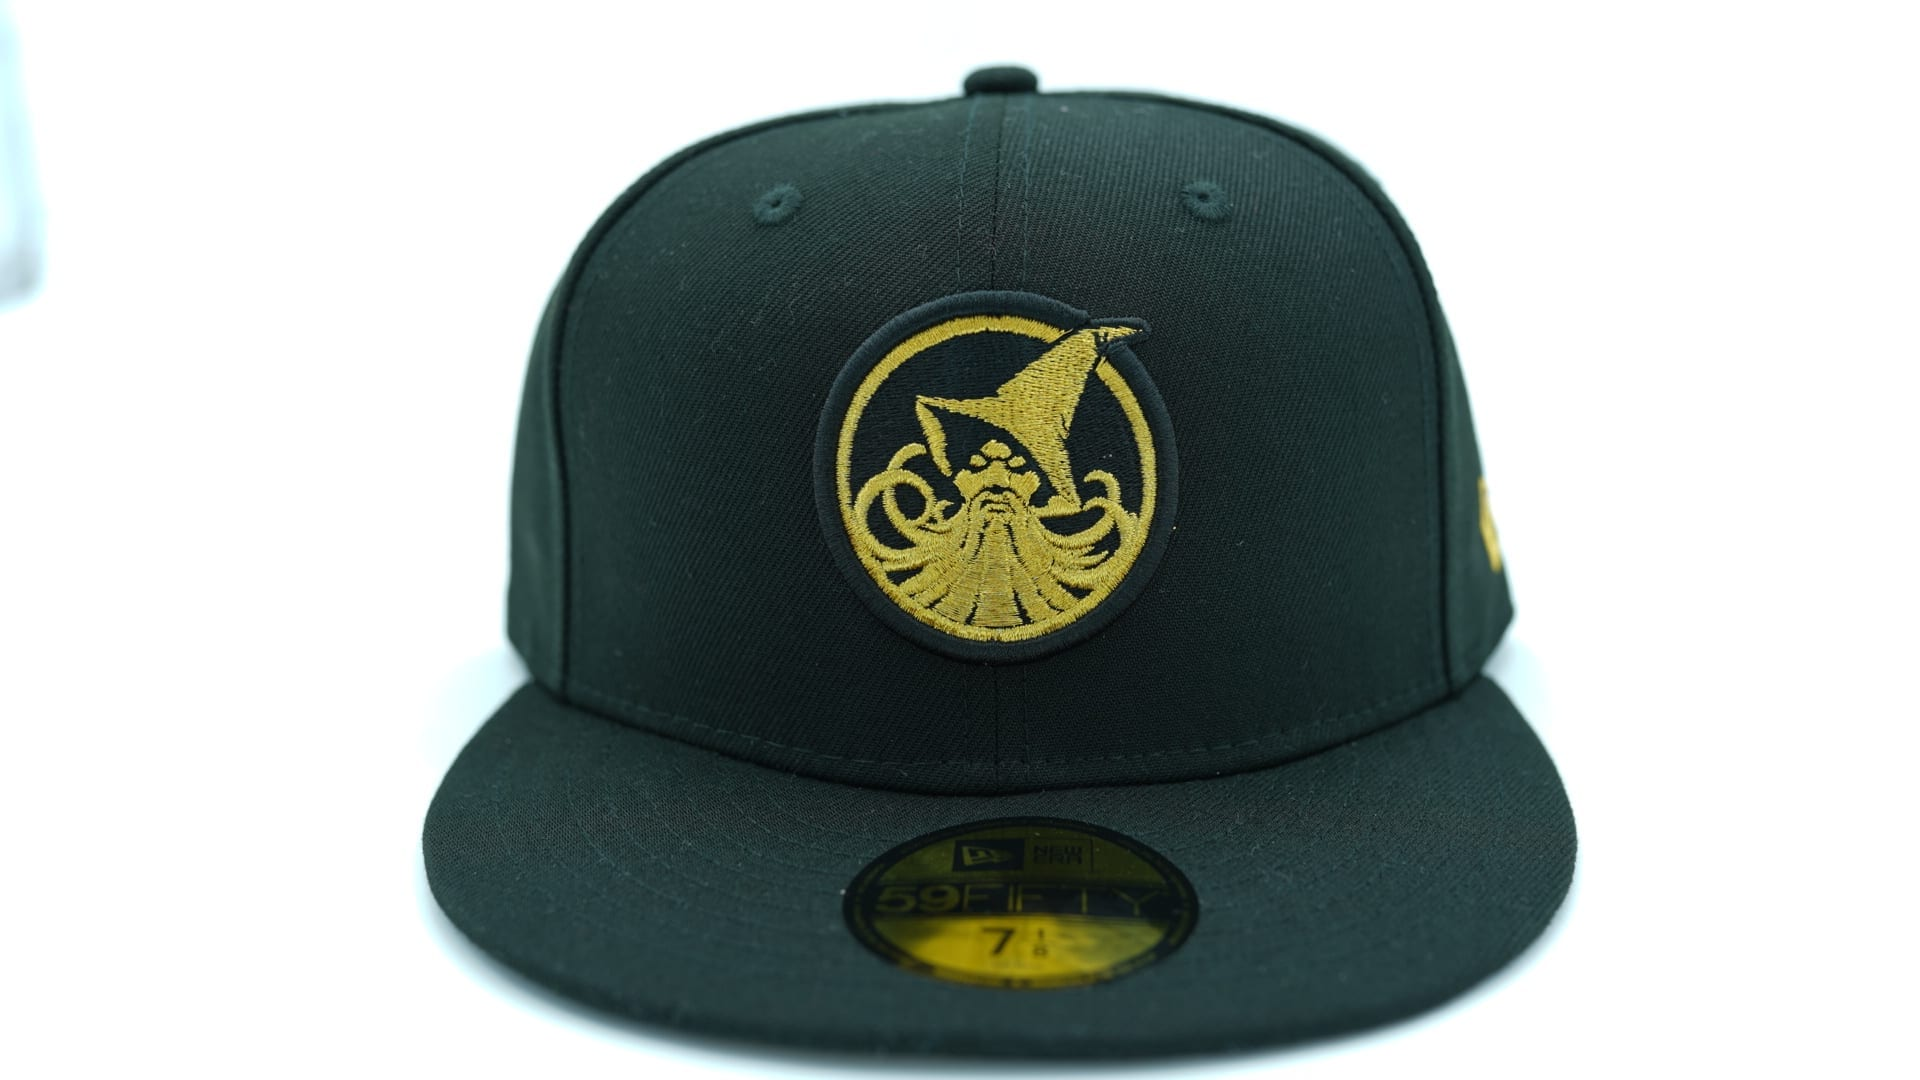 Oakland Raiders NFL Draft On-stage 59fifty Fitted Cap by New Era